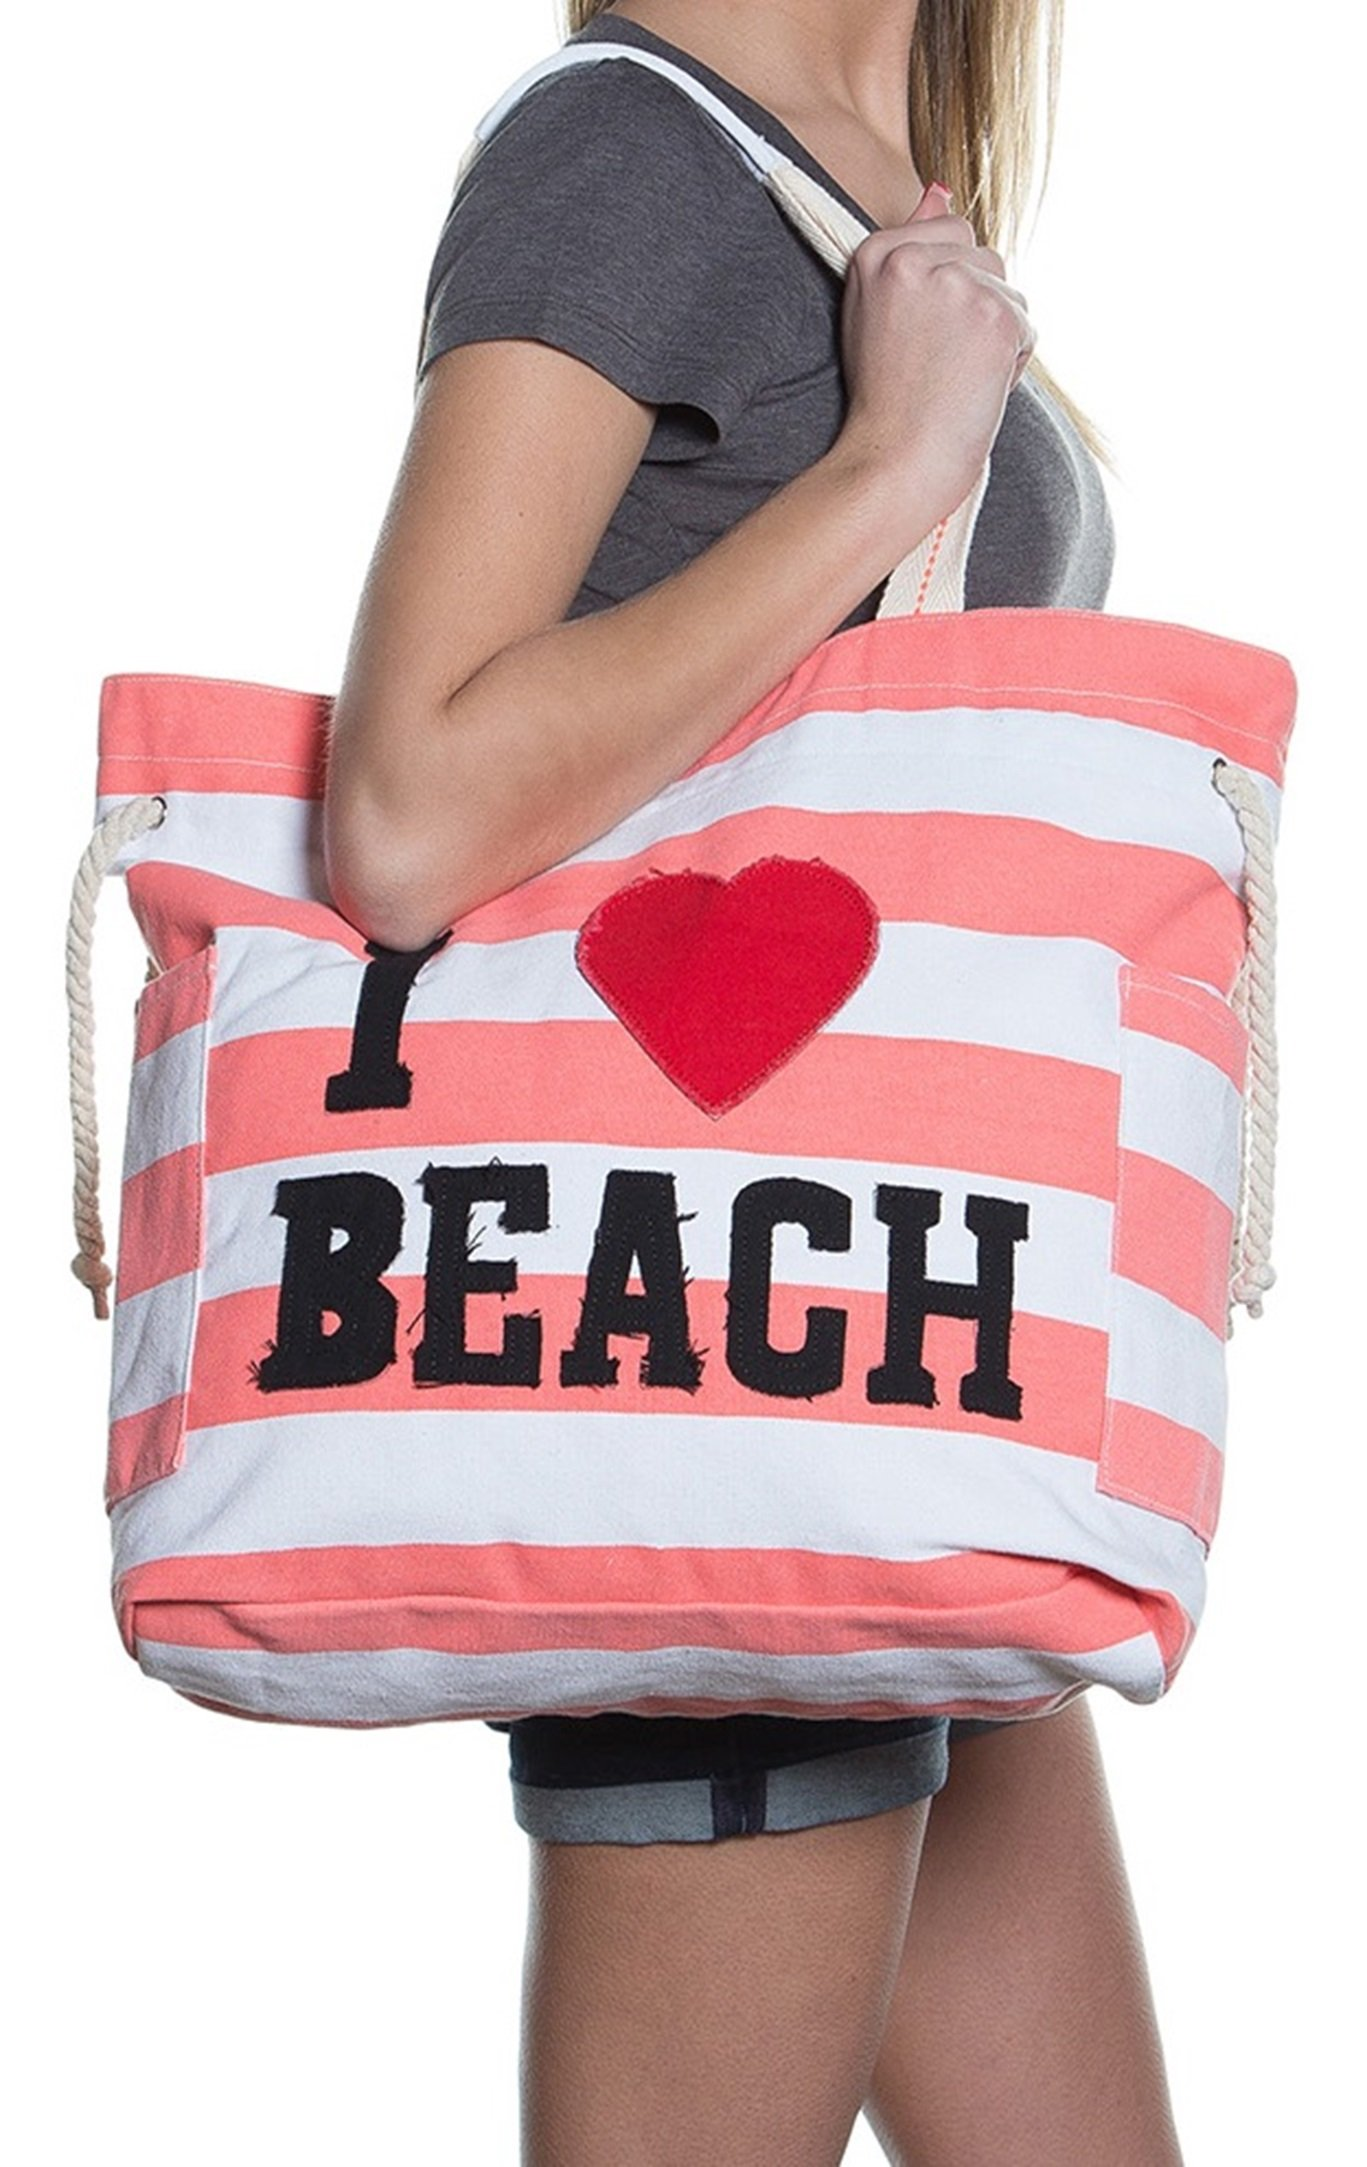 Beach Bags - Extra Large Waterproof Canvas Striped Beach Bag Tote For Women